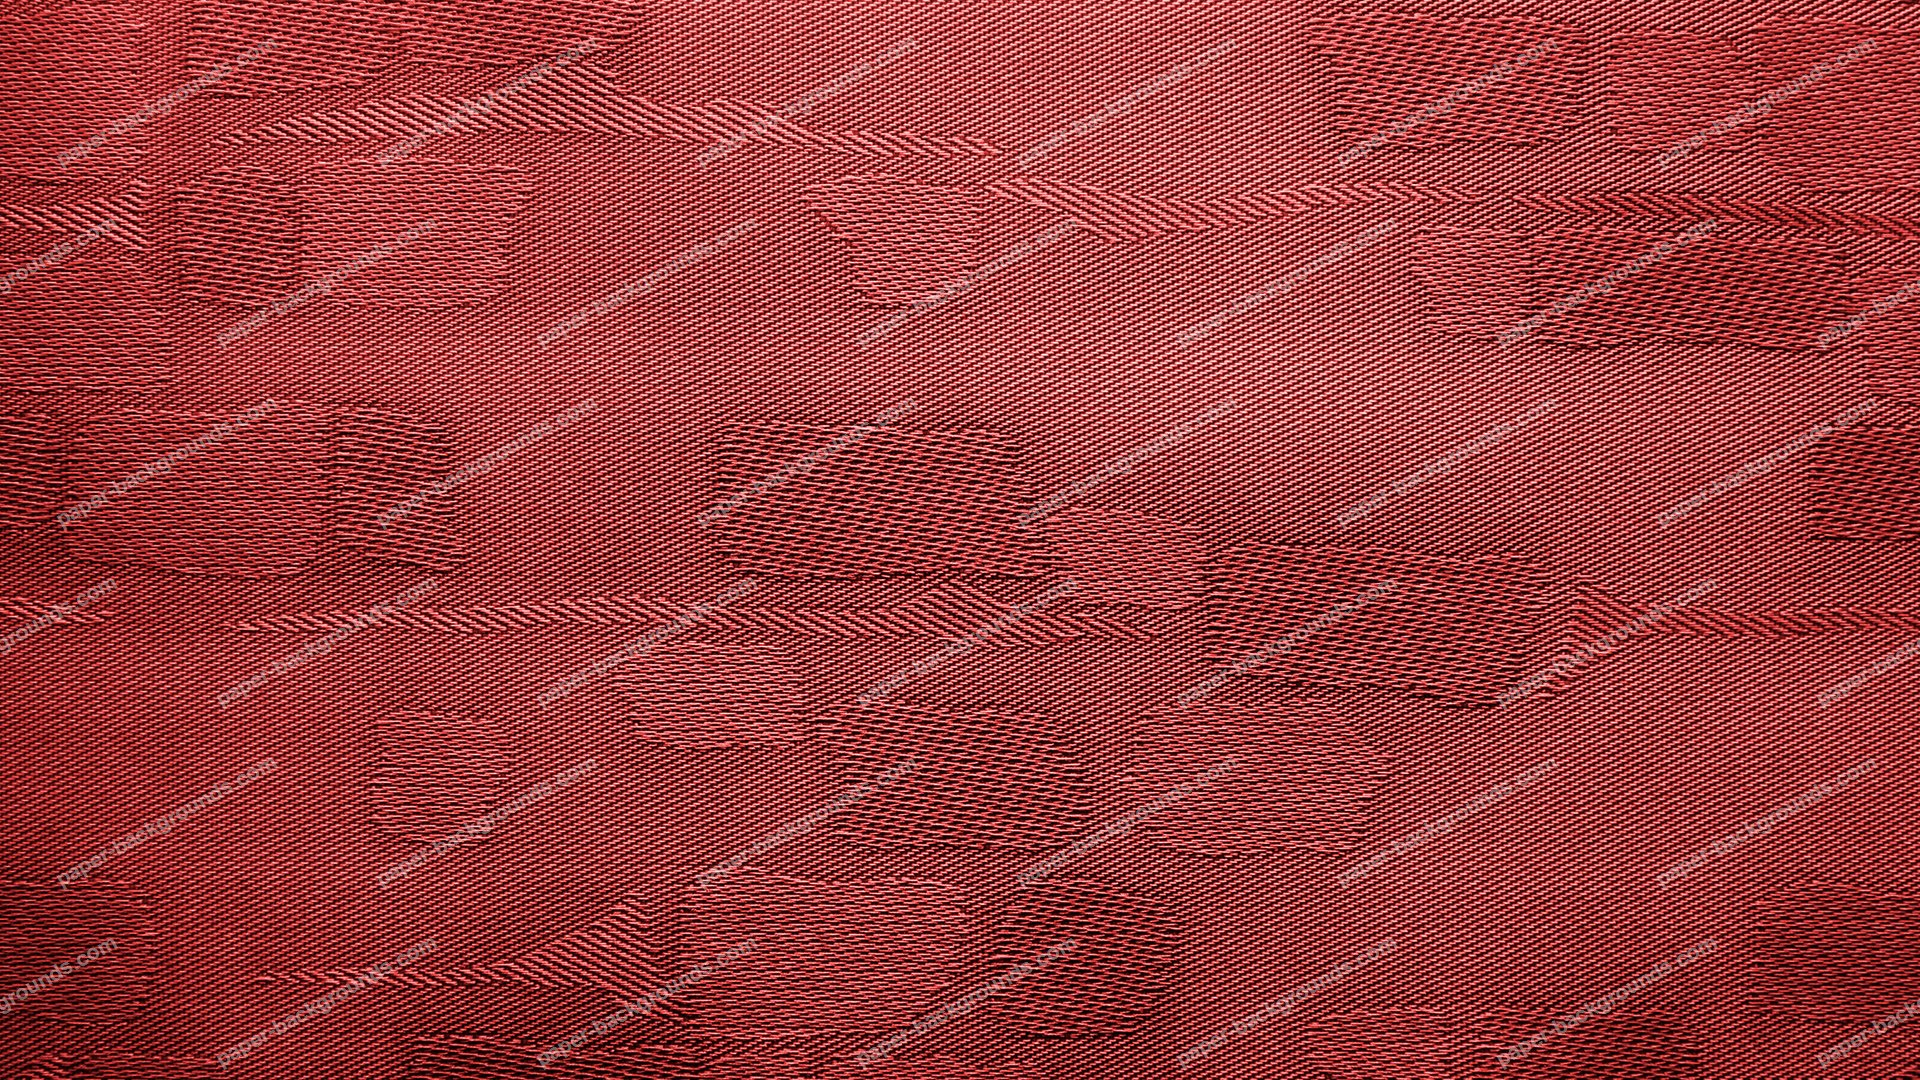 Red Fabric Background With Patches HD 1920 x 1080p